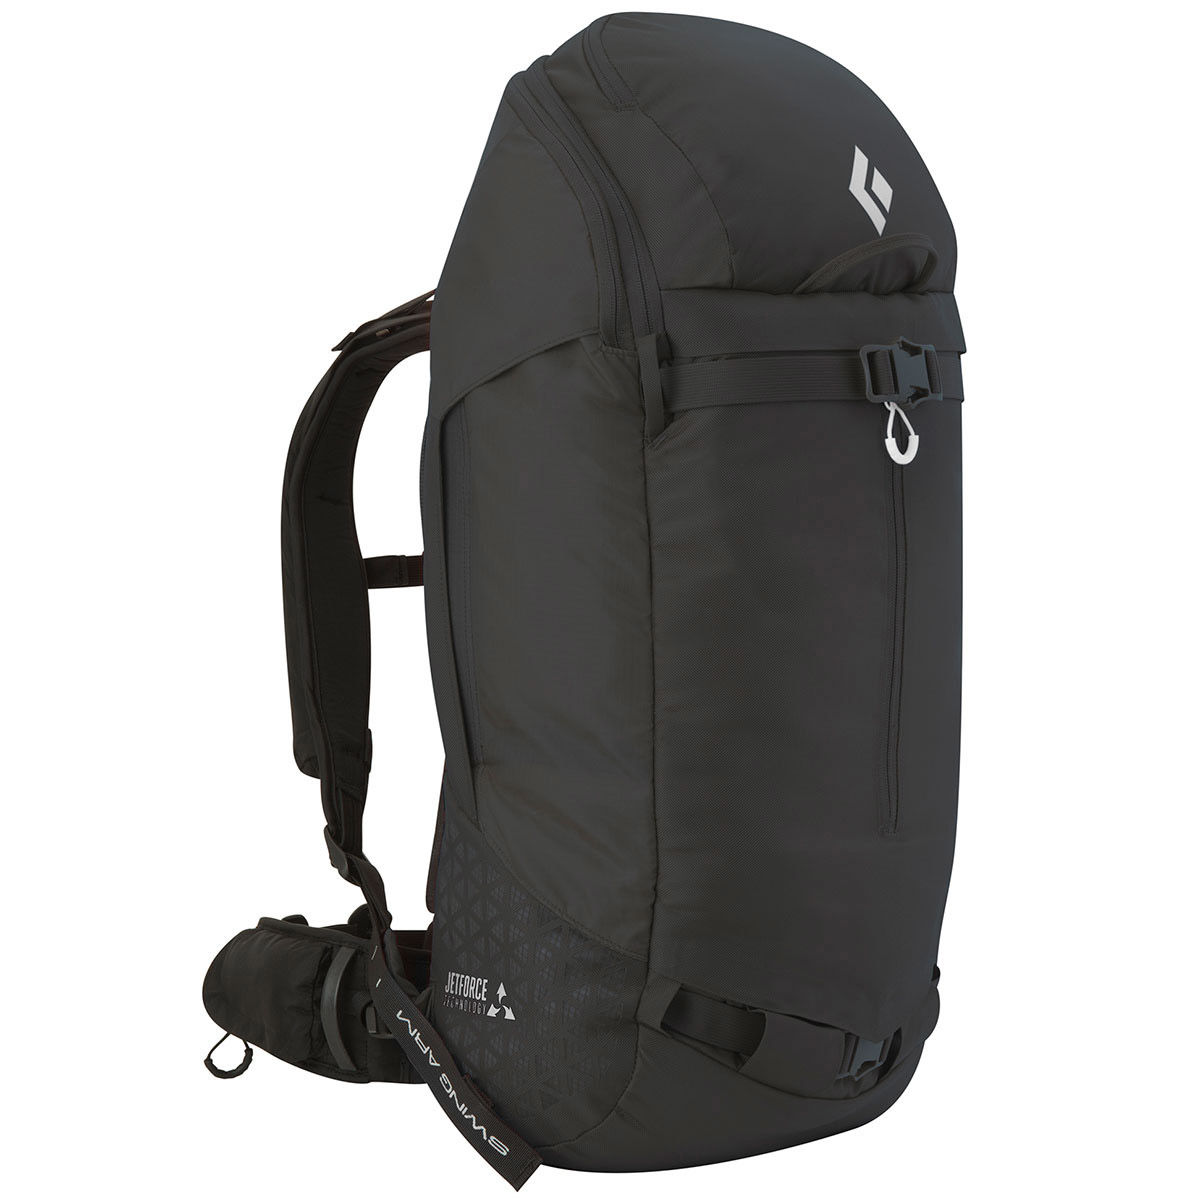 photo: Black Diamond Saga 40 Jetforce Avalanche Airbag Pack avalanche airbag pack